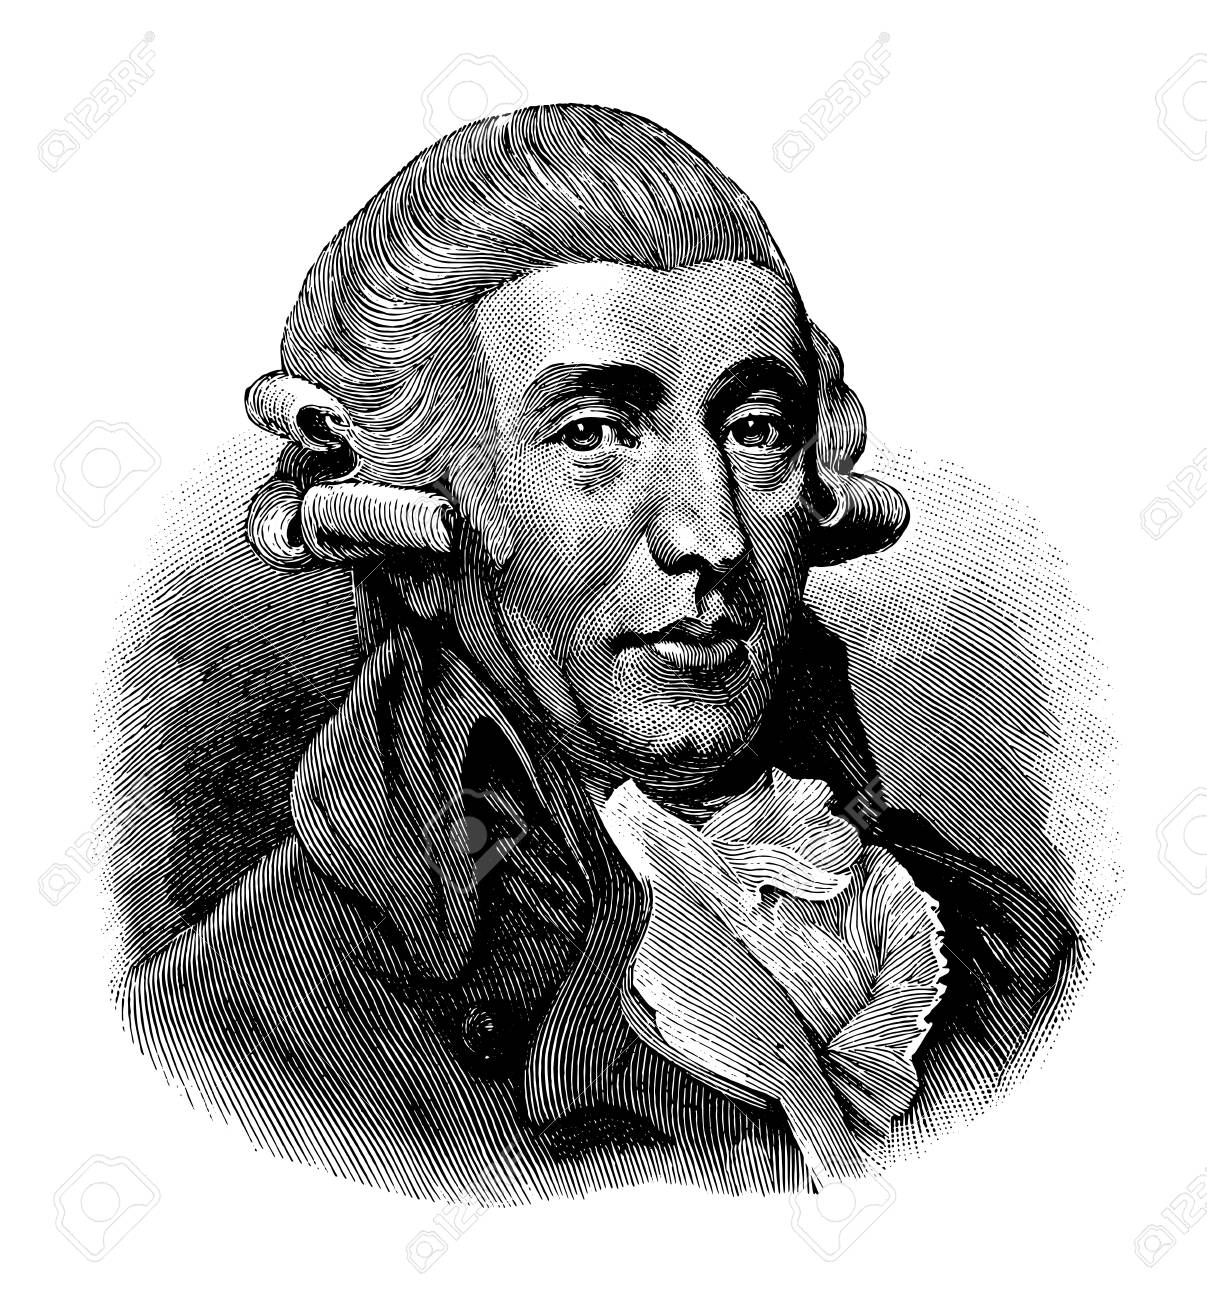 vectorized old engraving of Joseph Haydn, engraving is from Meyers Lexicon published 1914 - 117162921